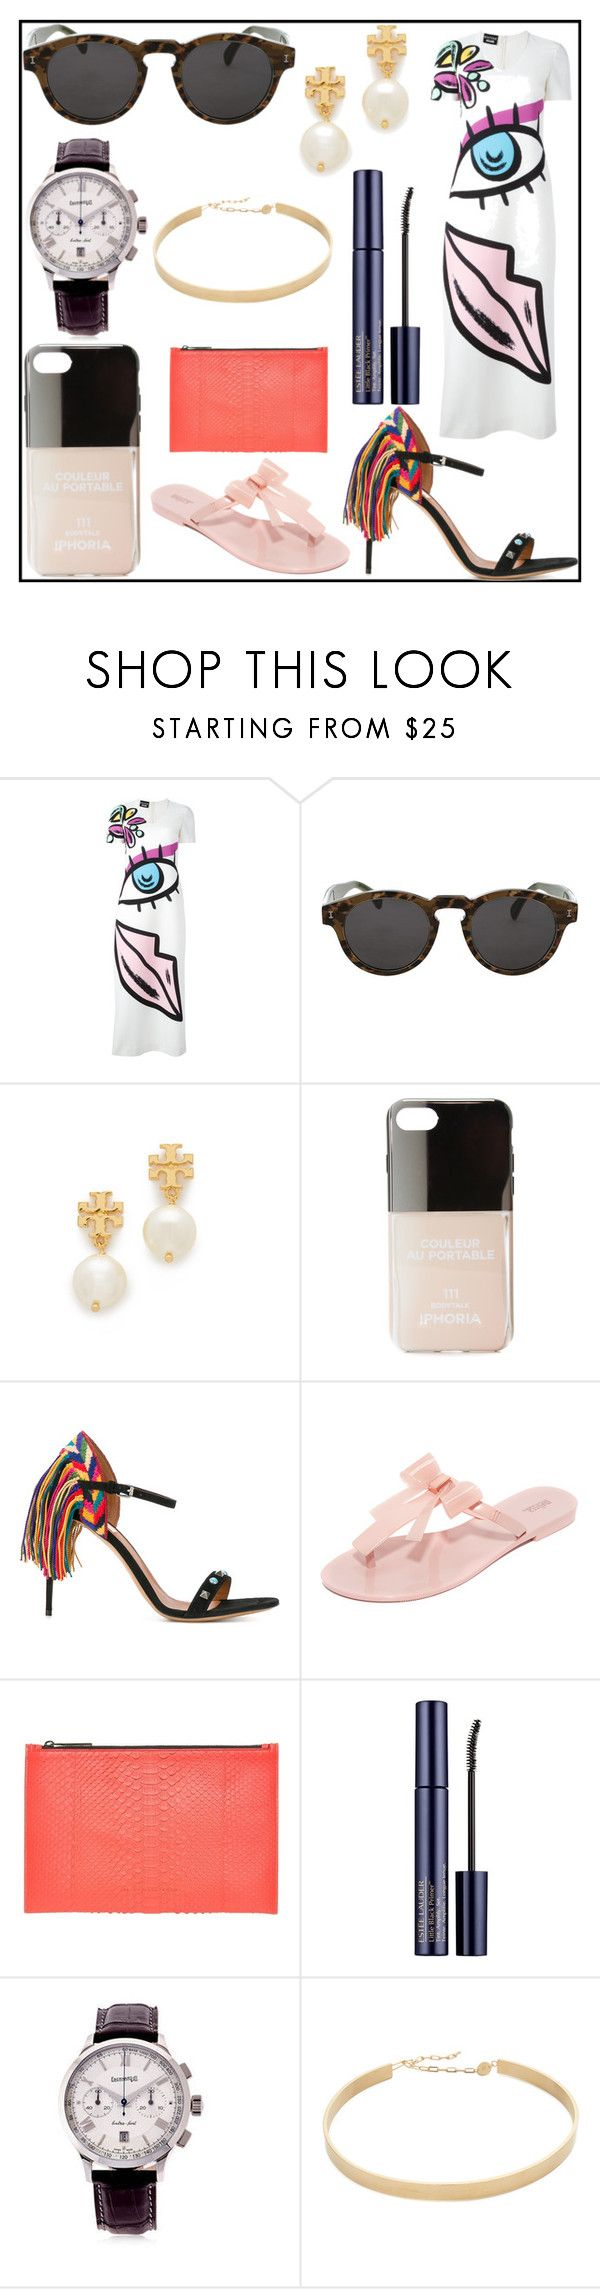 """""""Fashion for all"""" by denisee-denisee ❤ liked on Polyvore featuring Boutique Moschino, Illesteva, Tory Burch, Iphoria, Valentino, Melissa, Victoria Beckham, Eberhard & Co. and Jennifer Zeuner"""